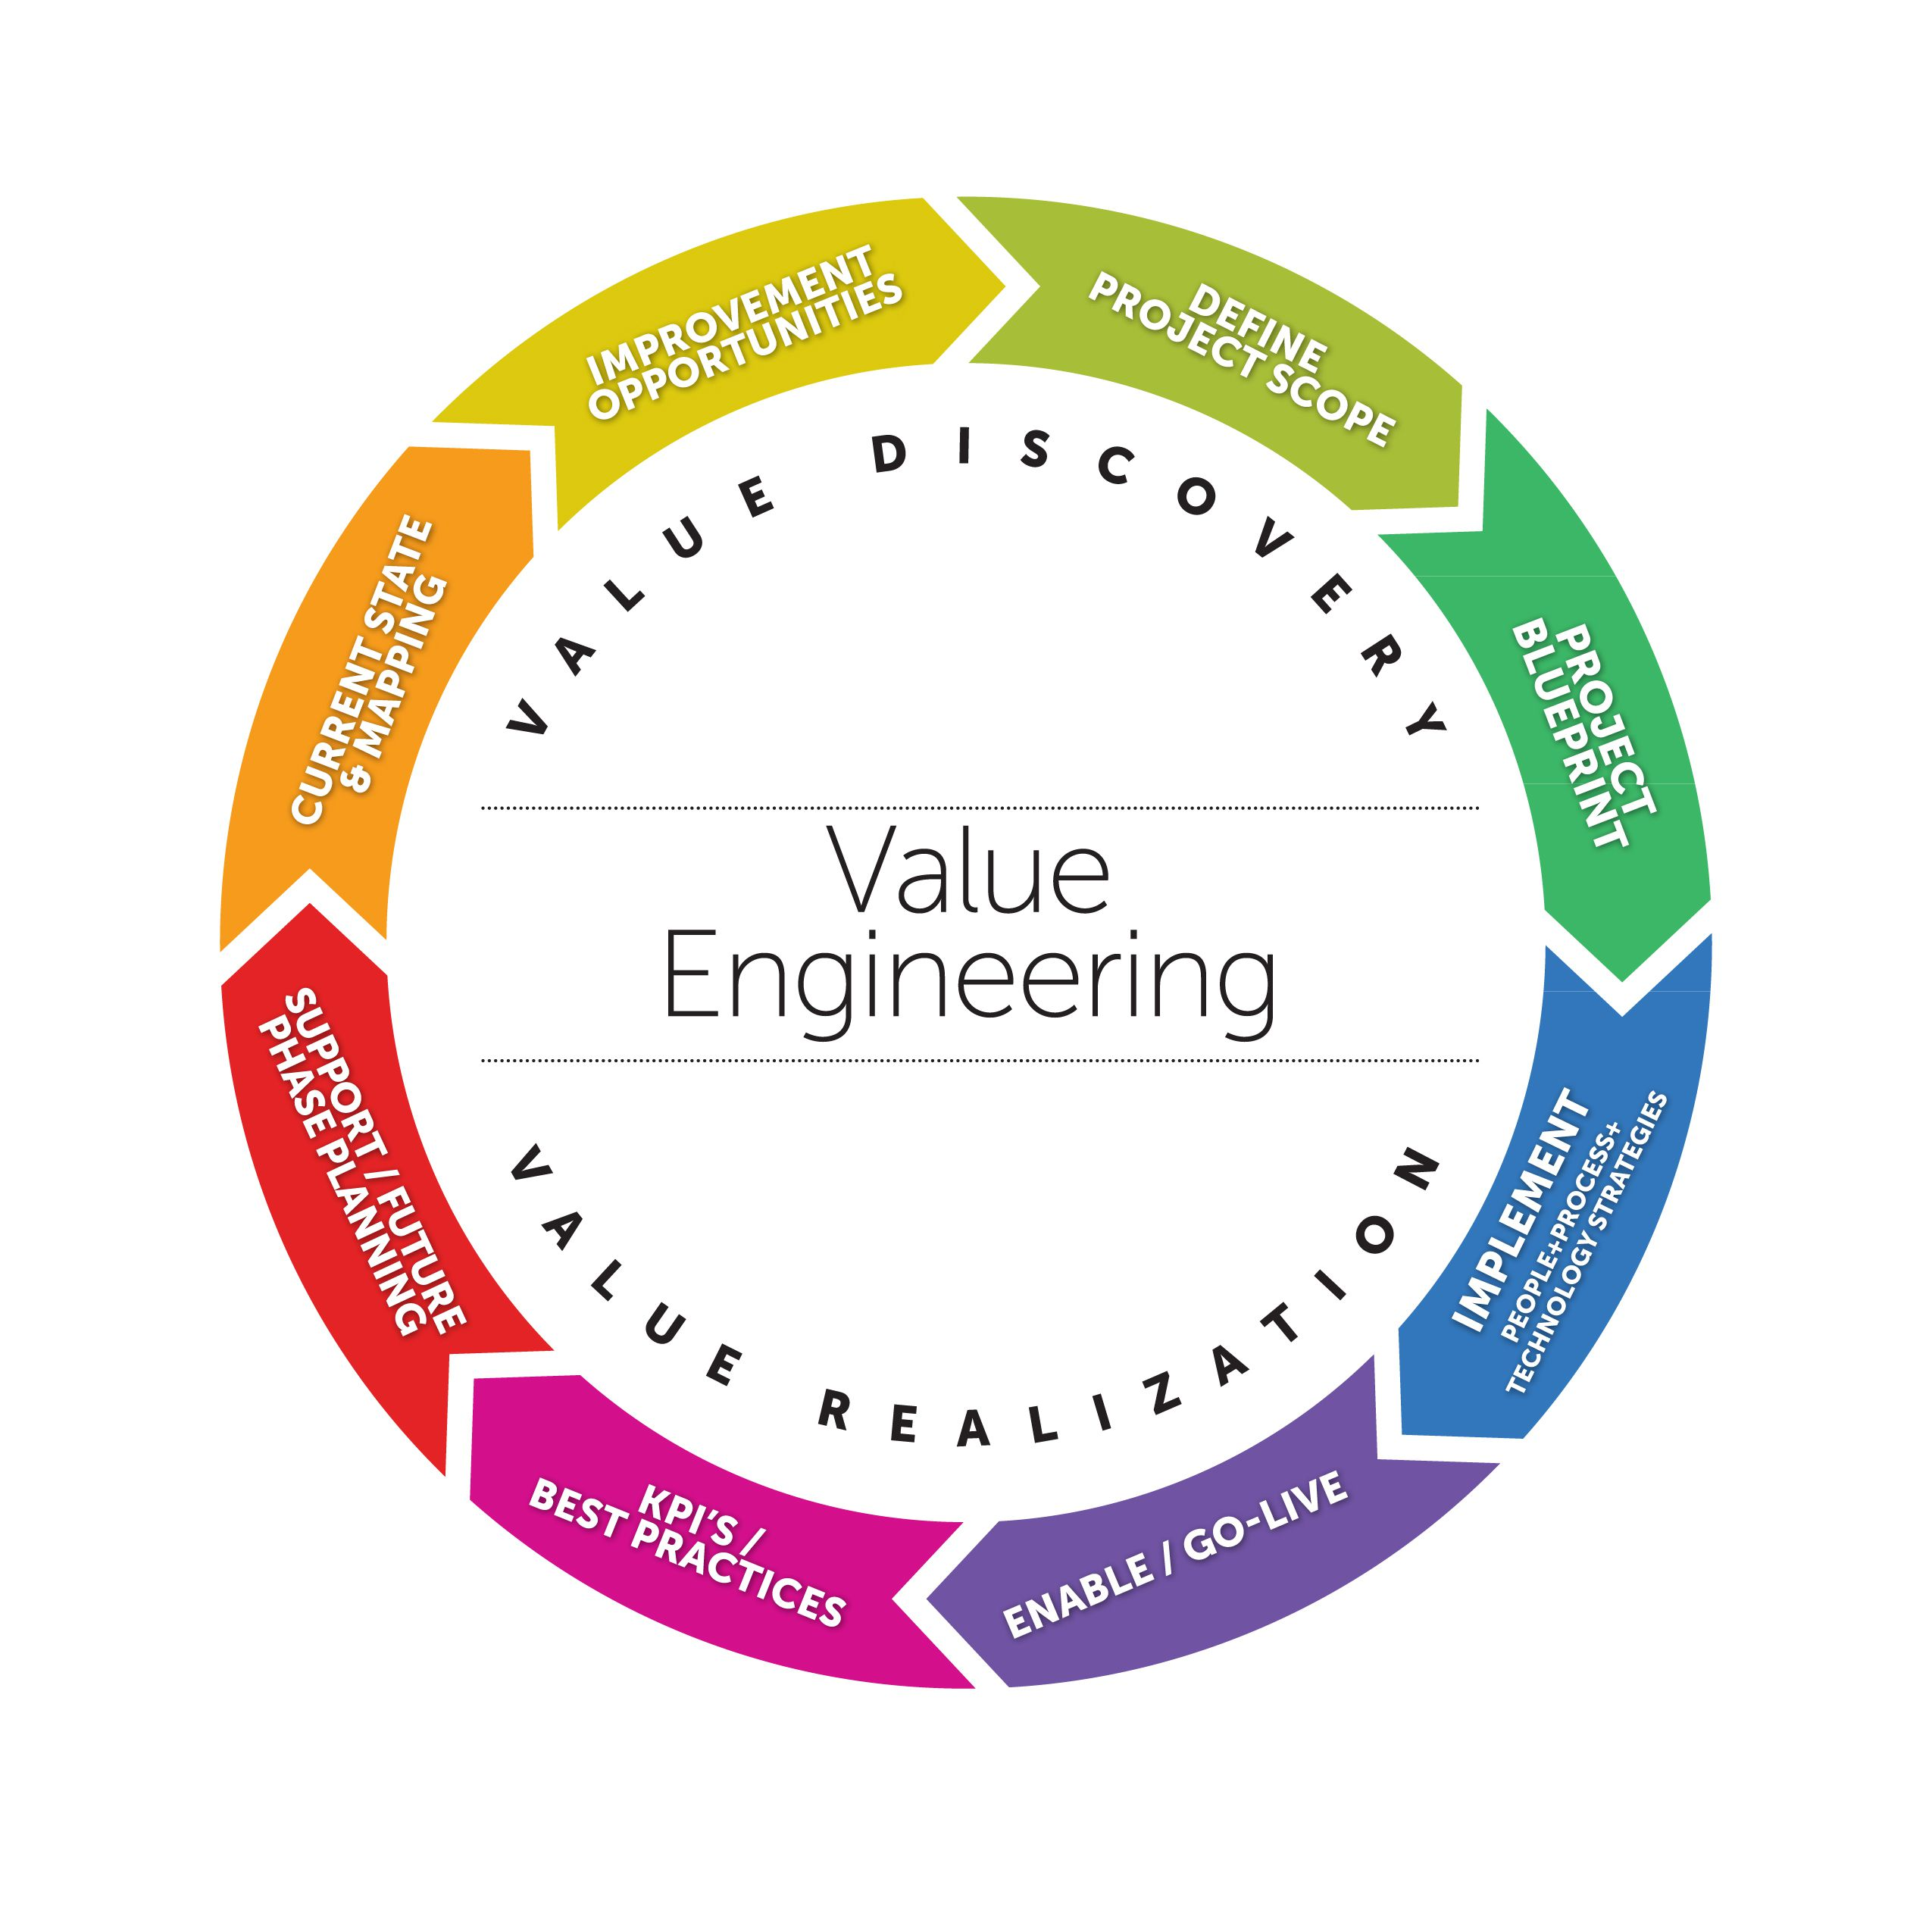 ValueEngineering